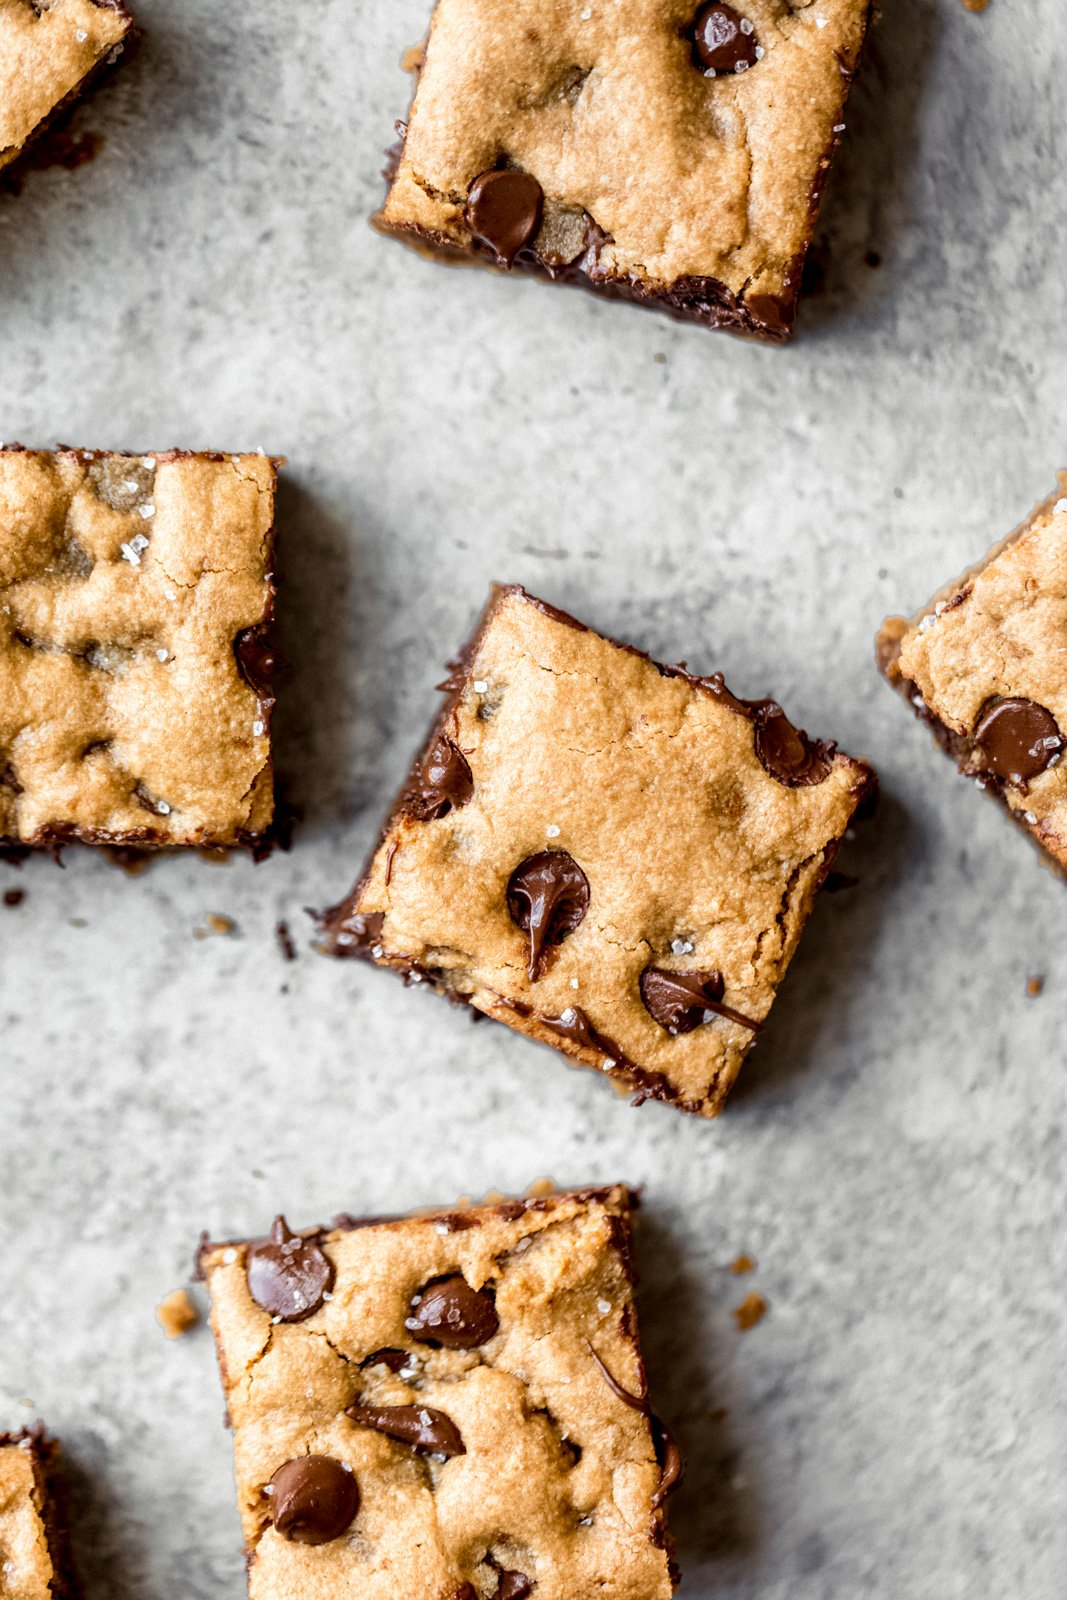 Paleo chocolate chip tahini blondies that are gooey with nutty, earthy notes and chocolate puddles in every bite. These will be your go-to dessert for parties, or whenever you need something sweet.